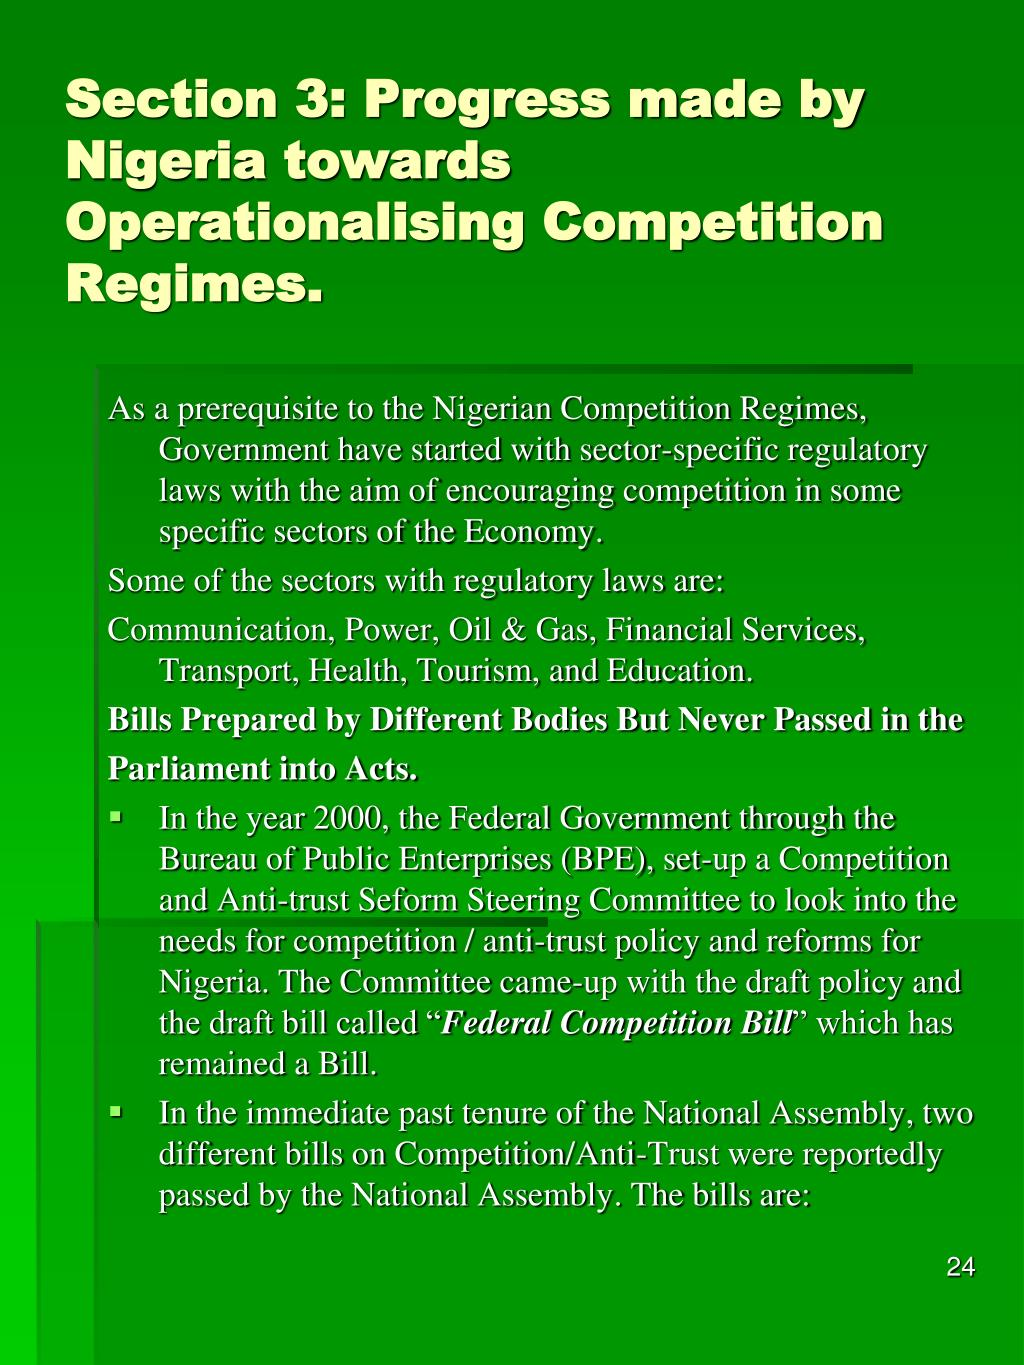 Section 3: Progress made by Nigeria towards Operationalising Competition Regimes.